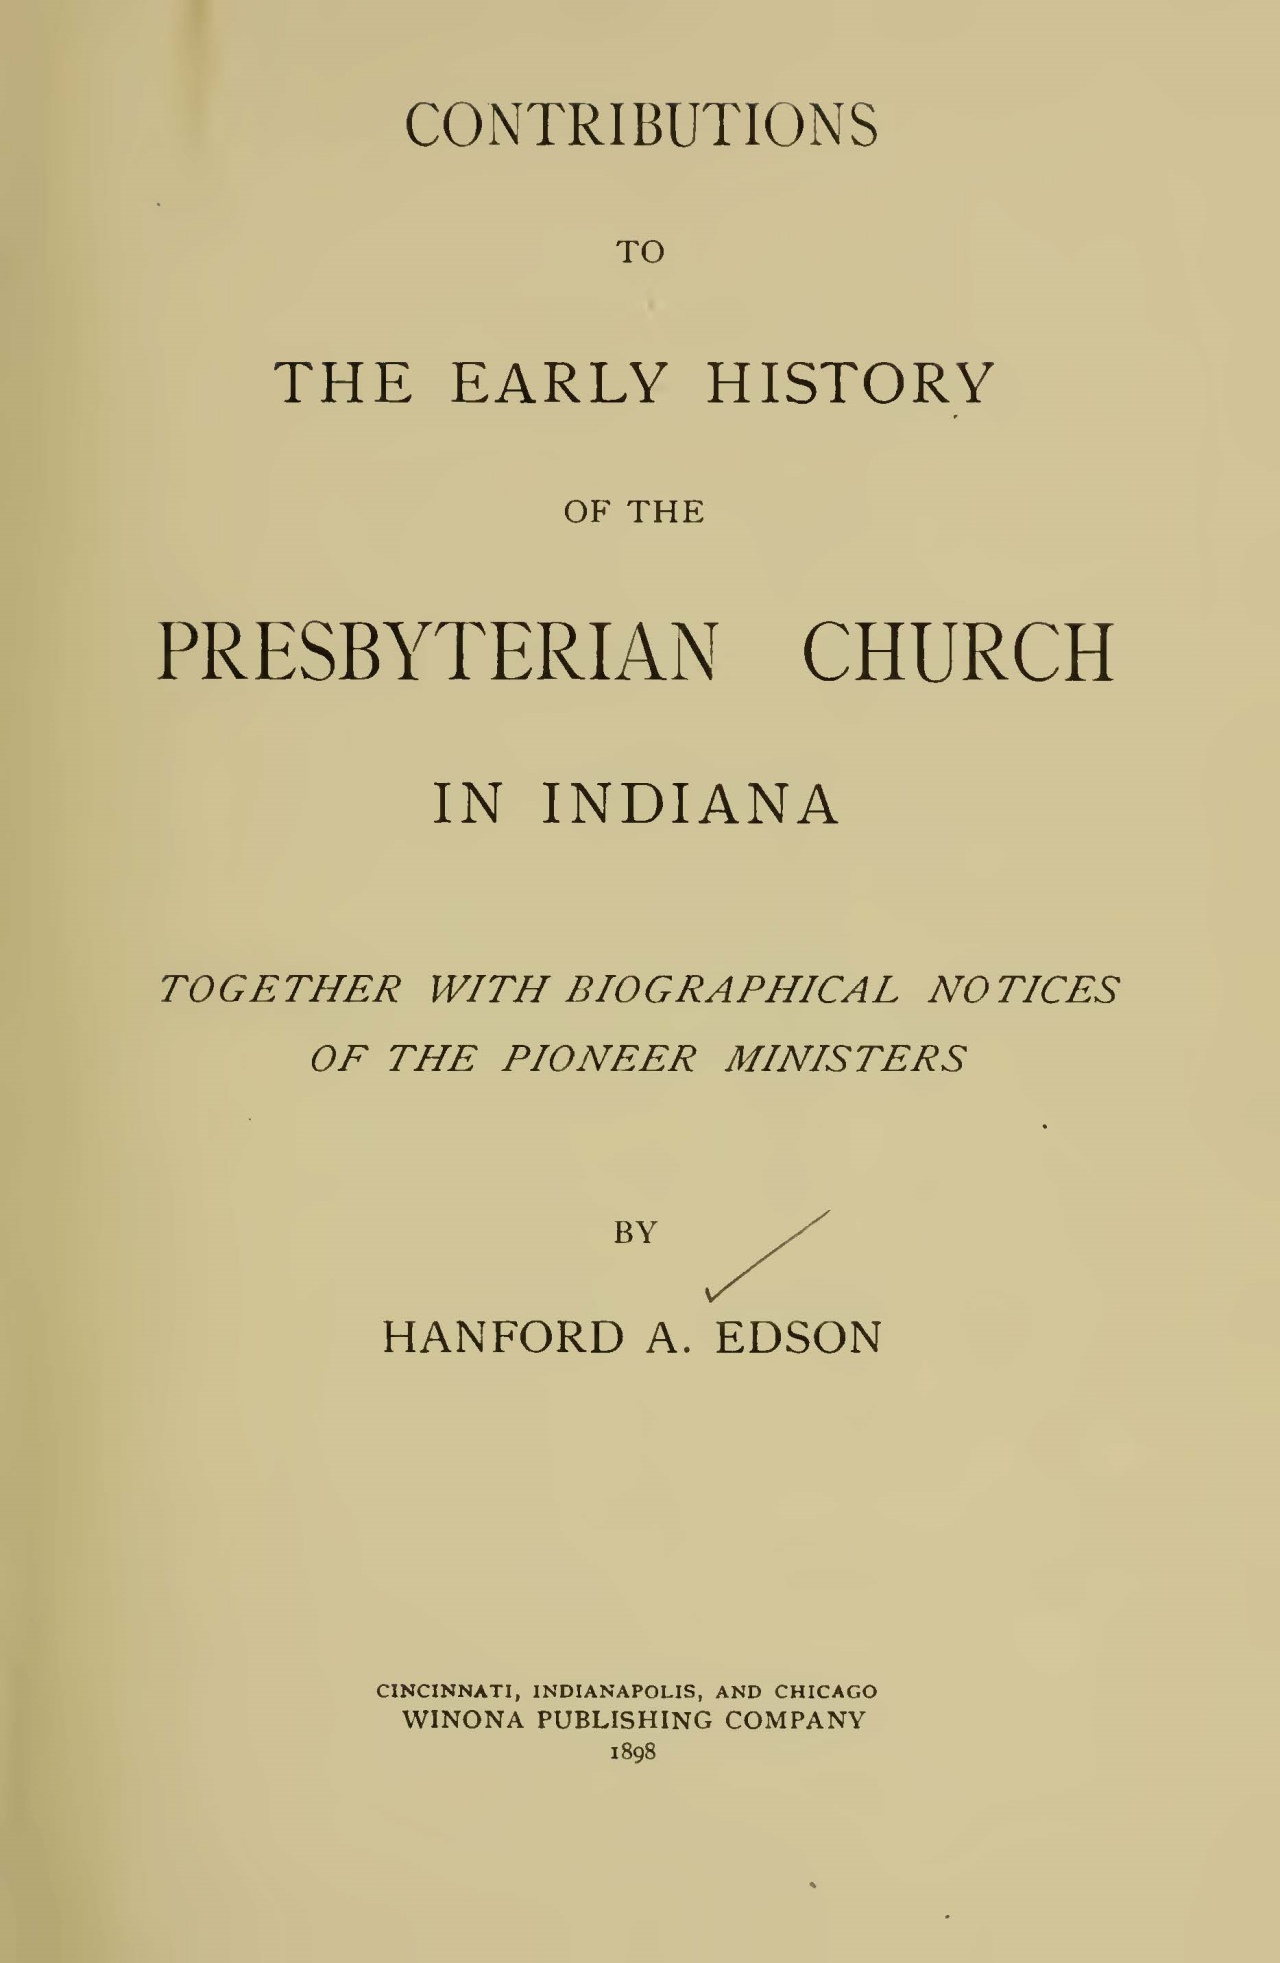 Edson, Hanford Abram, Contributions to the Early History of the Presbyterian Church in Indiana Title Page.jpg